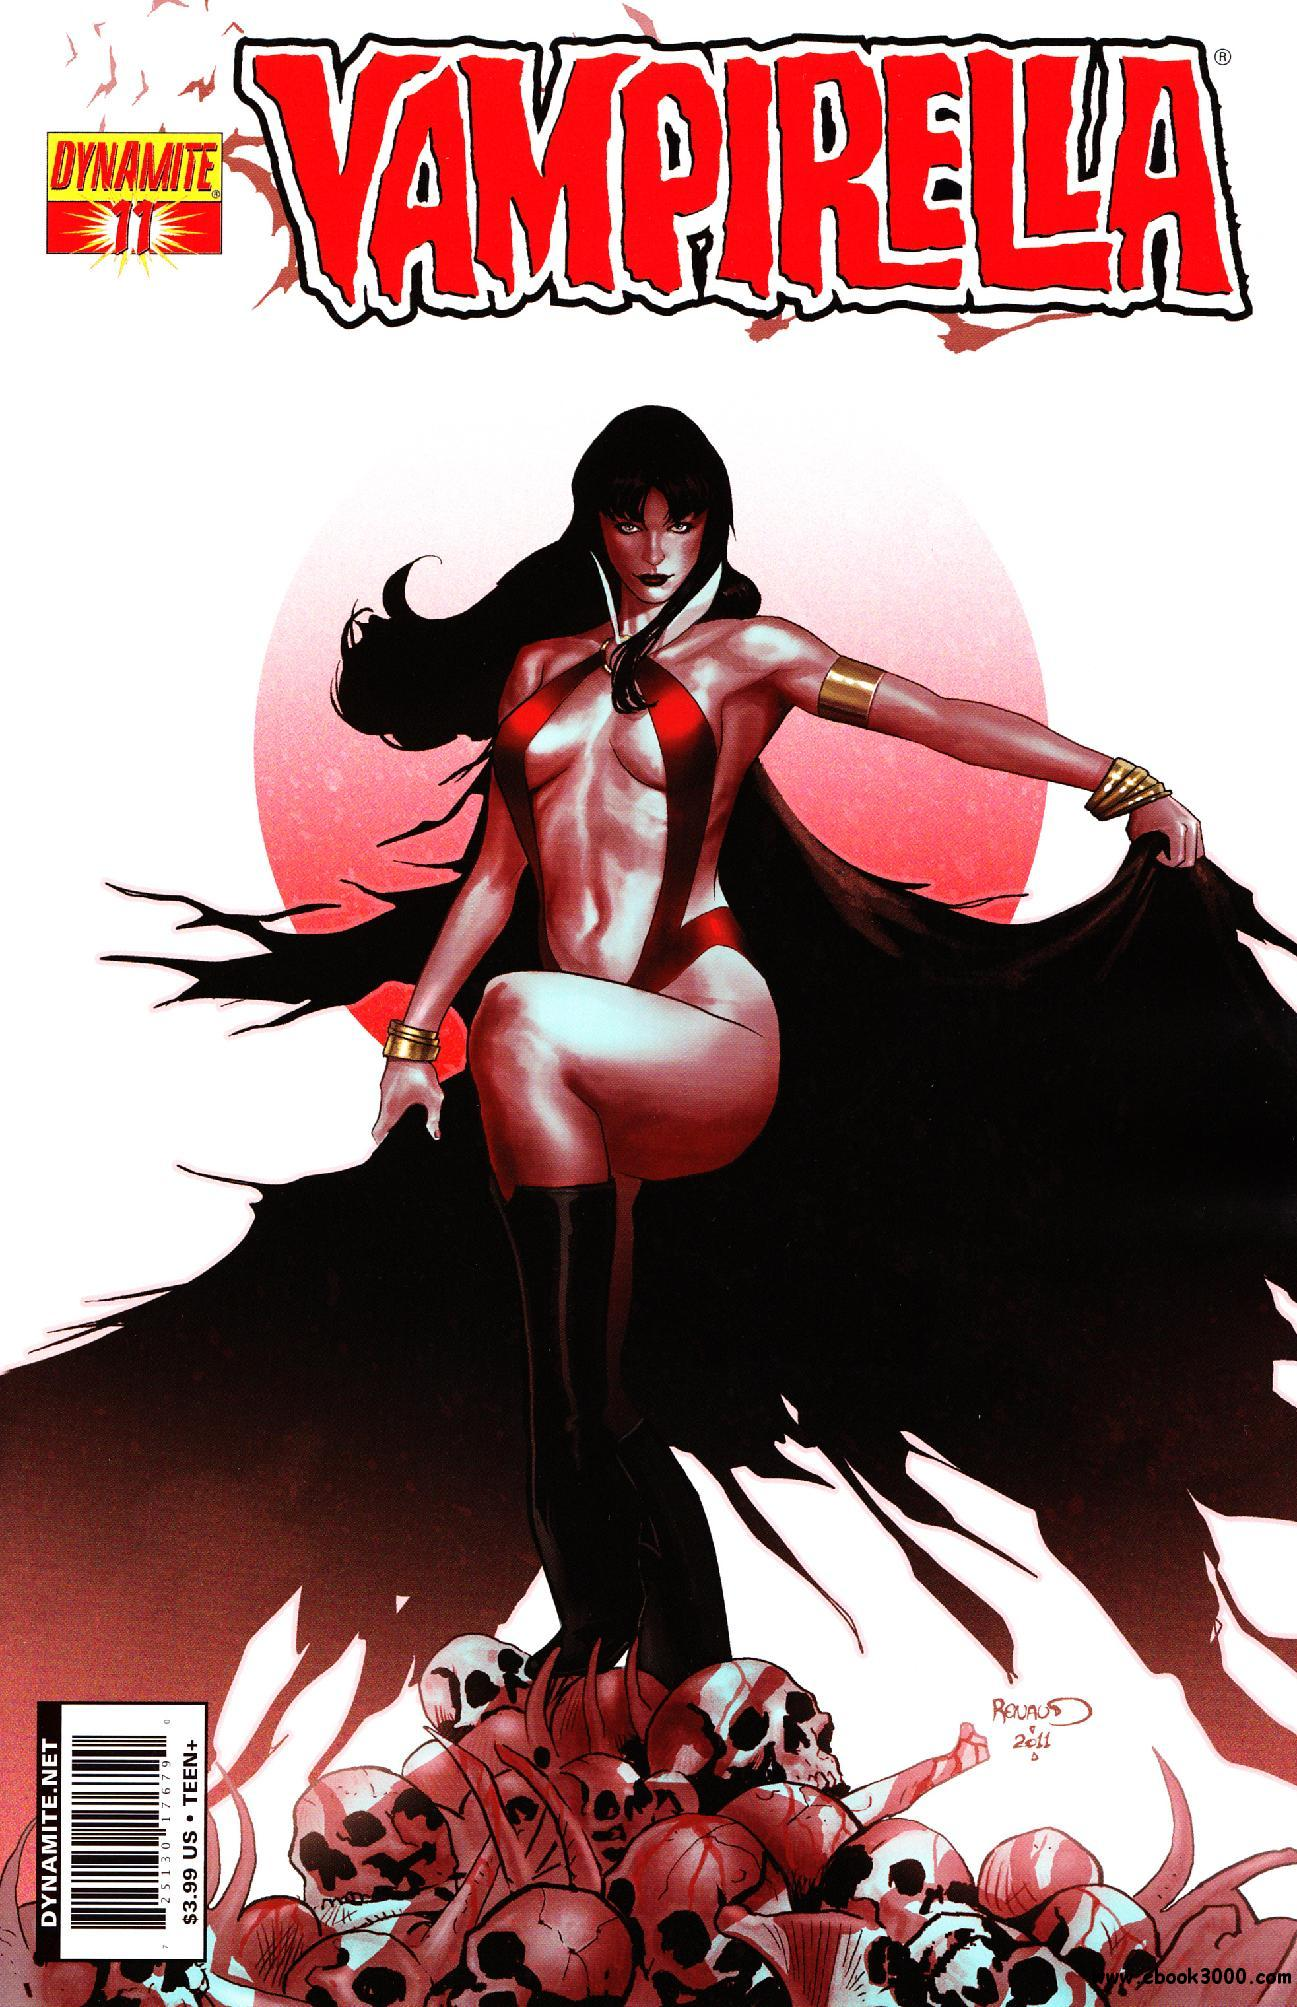 Vampirella #11 (2011) free download